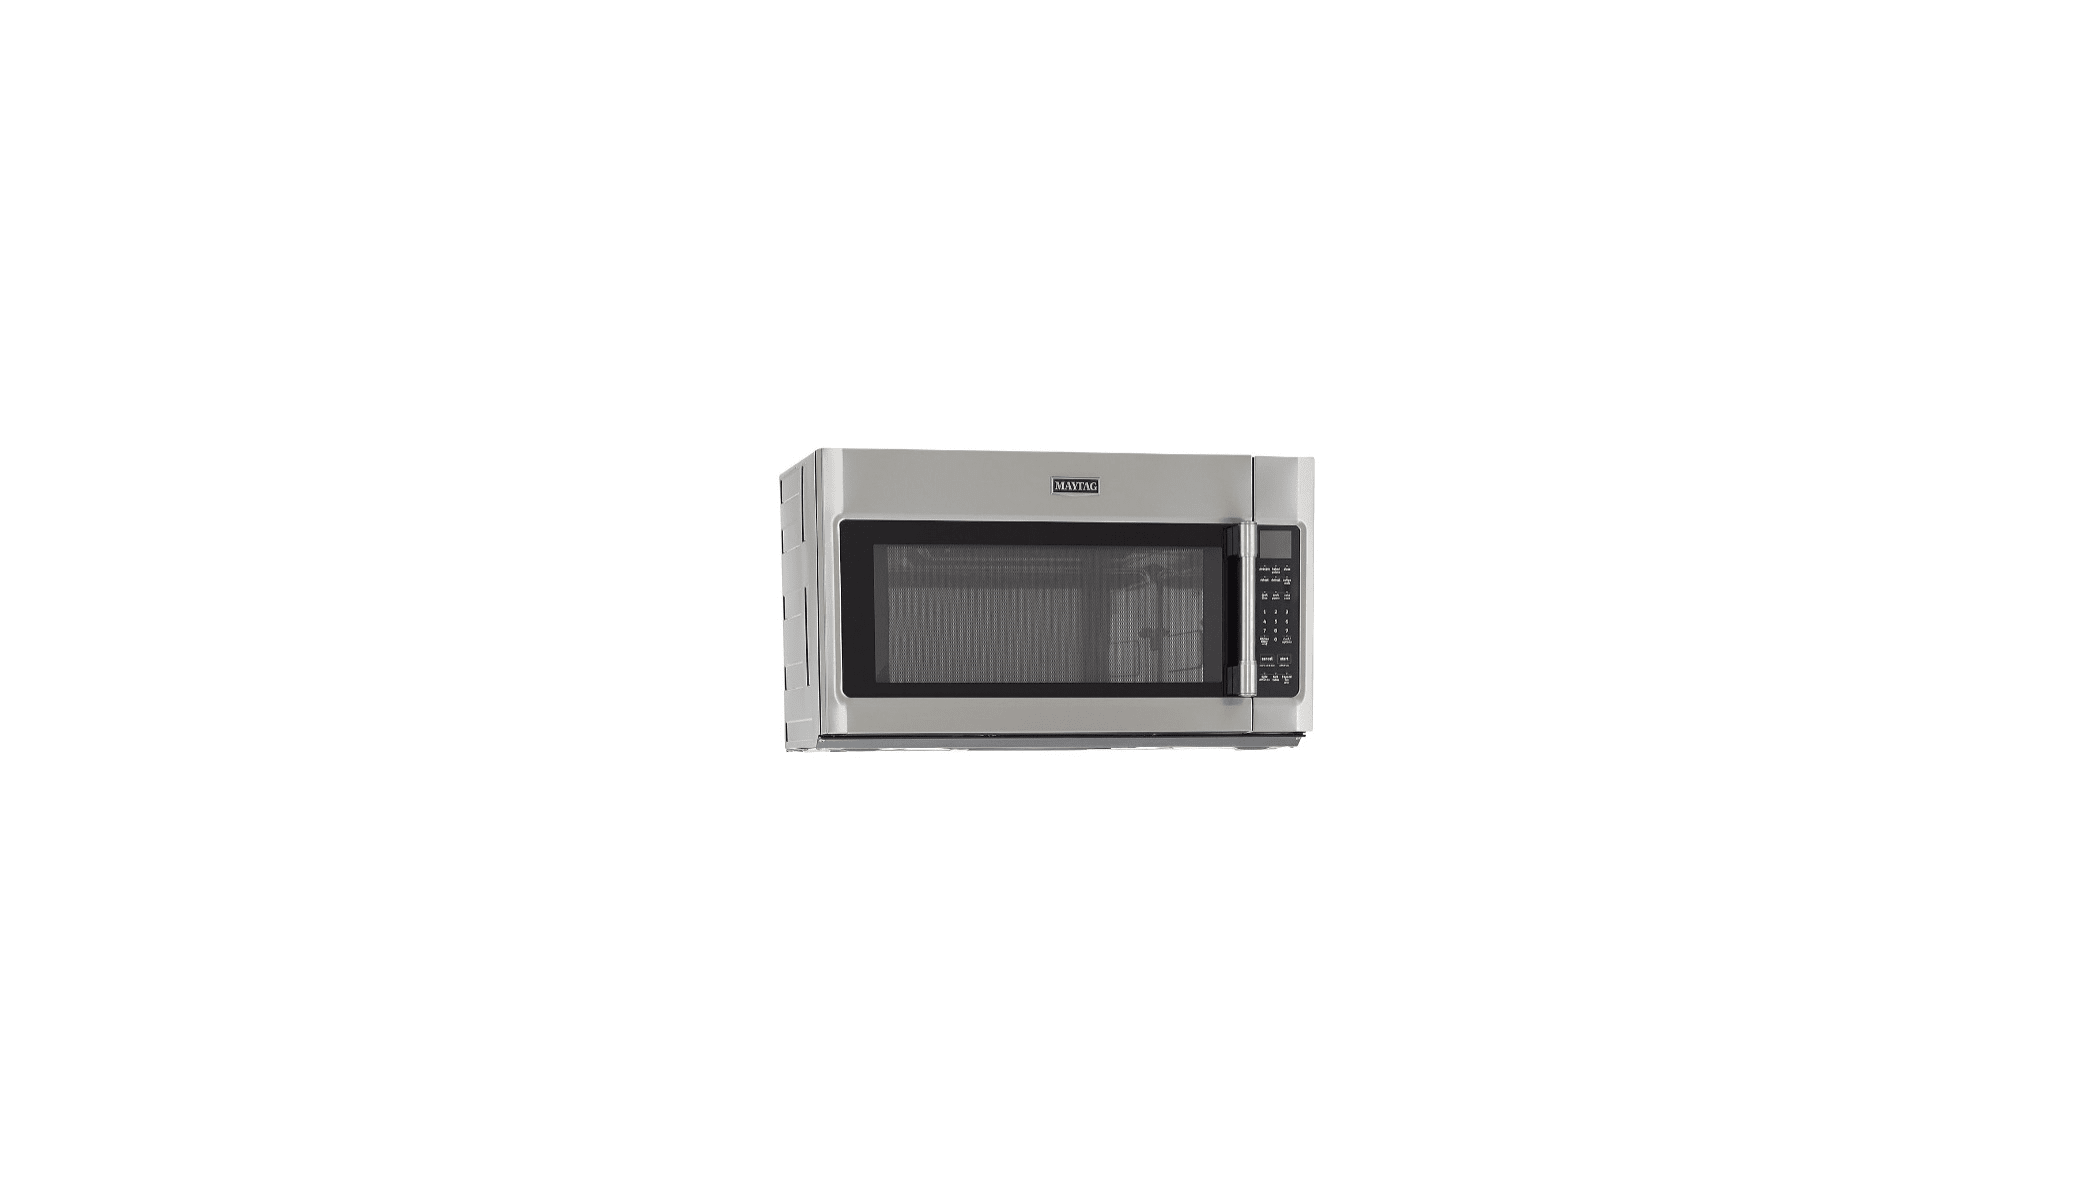 Maytag Microwave Microwave Ovens Mmv4205f